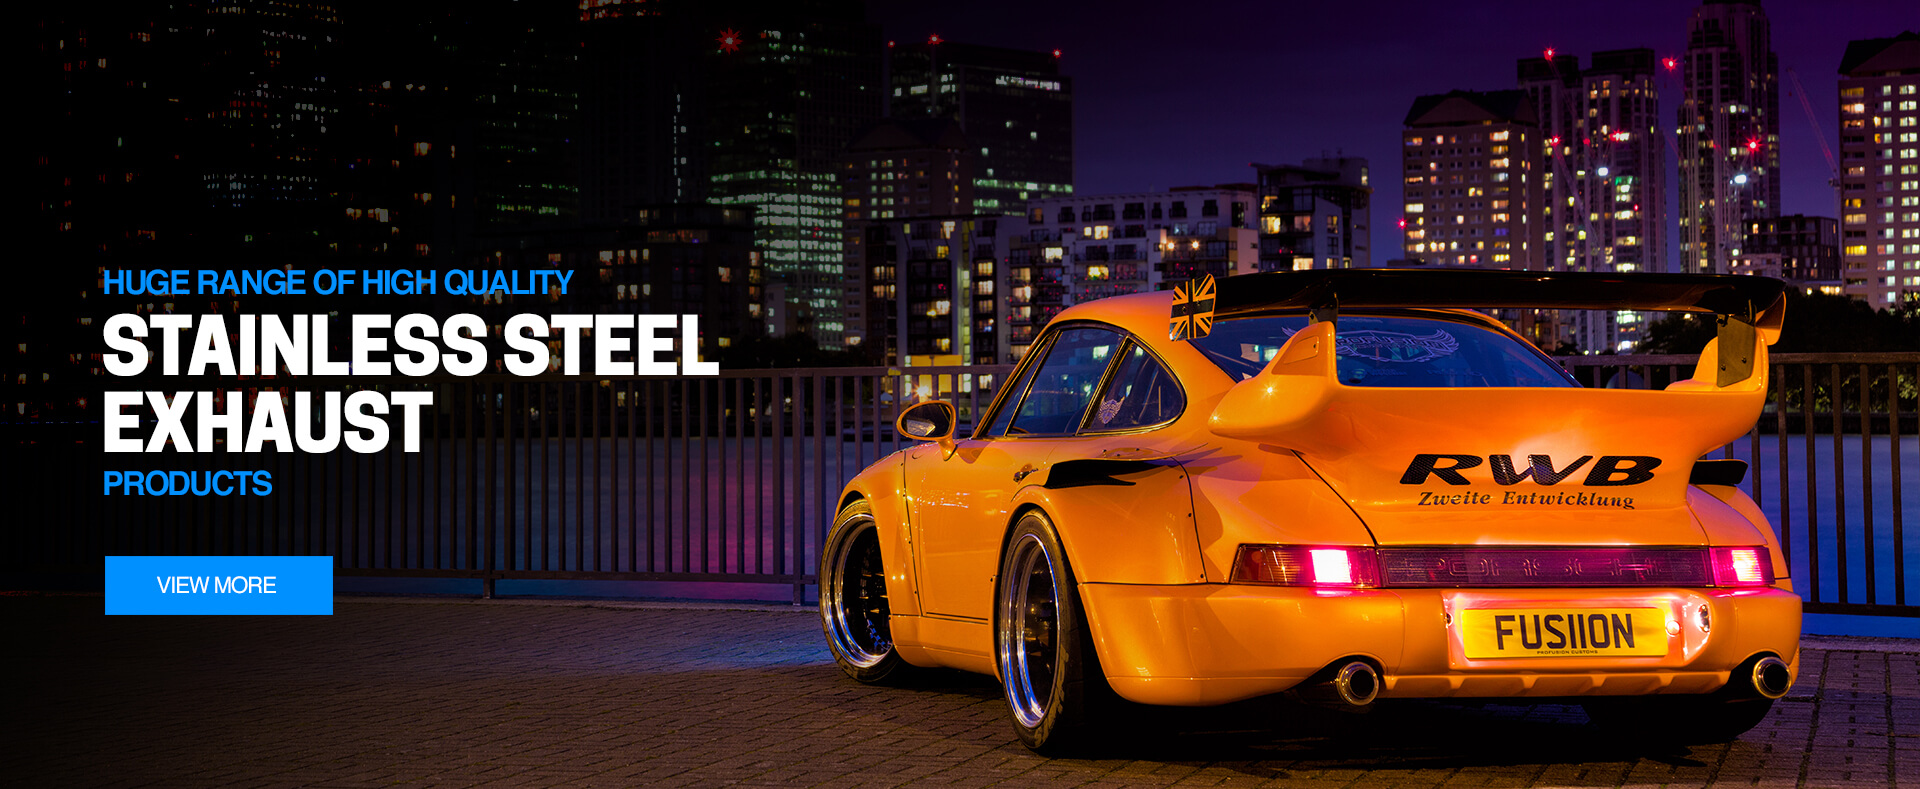 Huge Range of High Quality Stainless Steel Exhaust Products